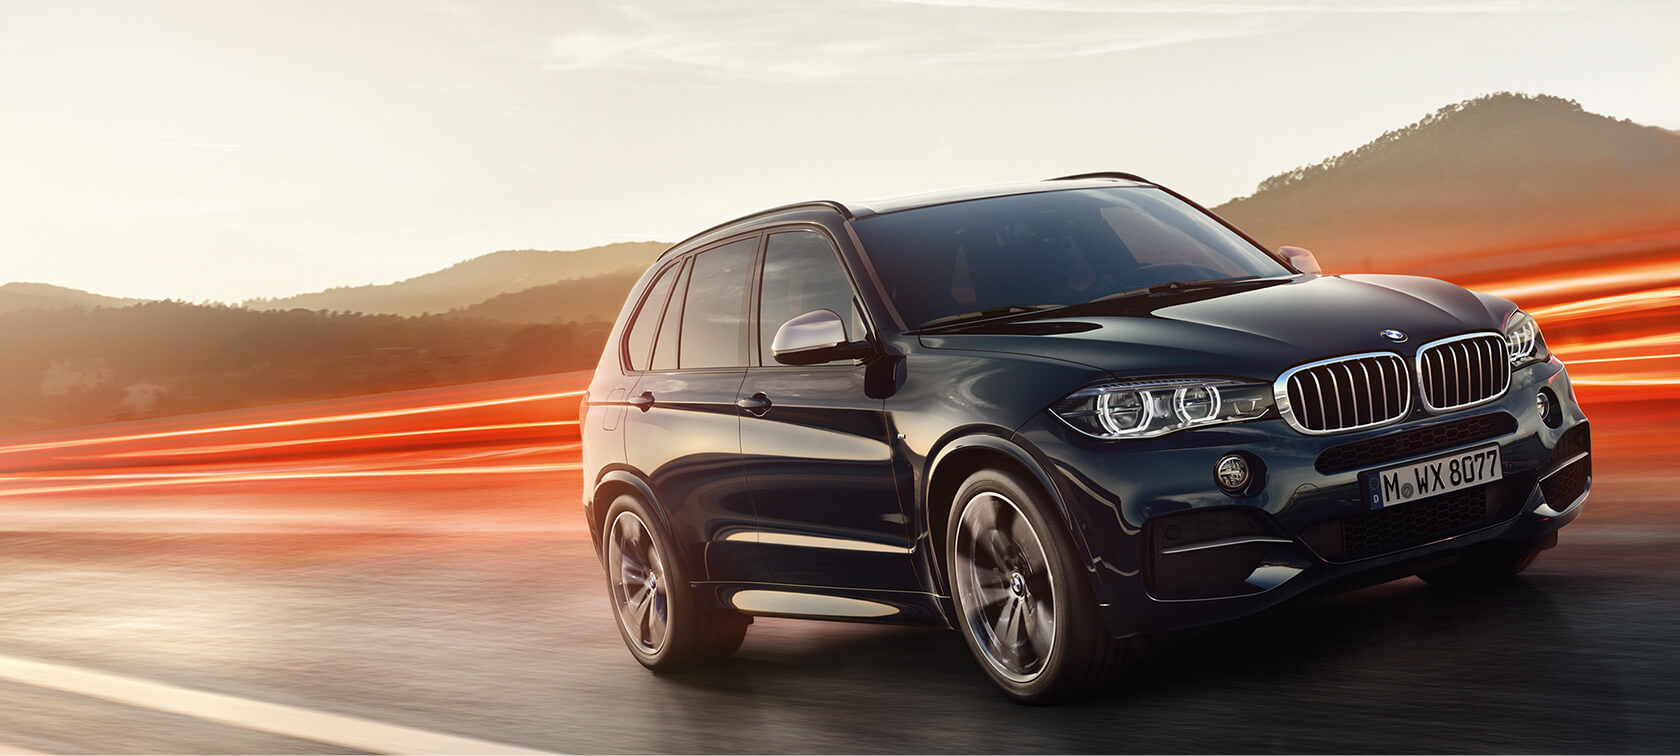 bmw x5 m50d leasing f r 756 euro im monat netto. Black Bedroom Furniture Sets. Home Design Ideas